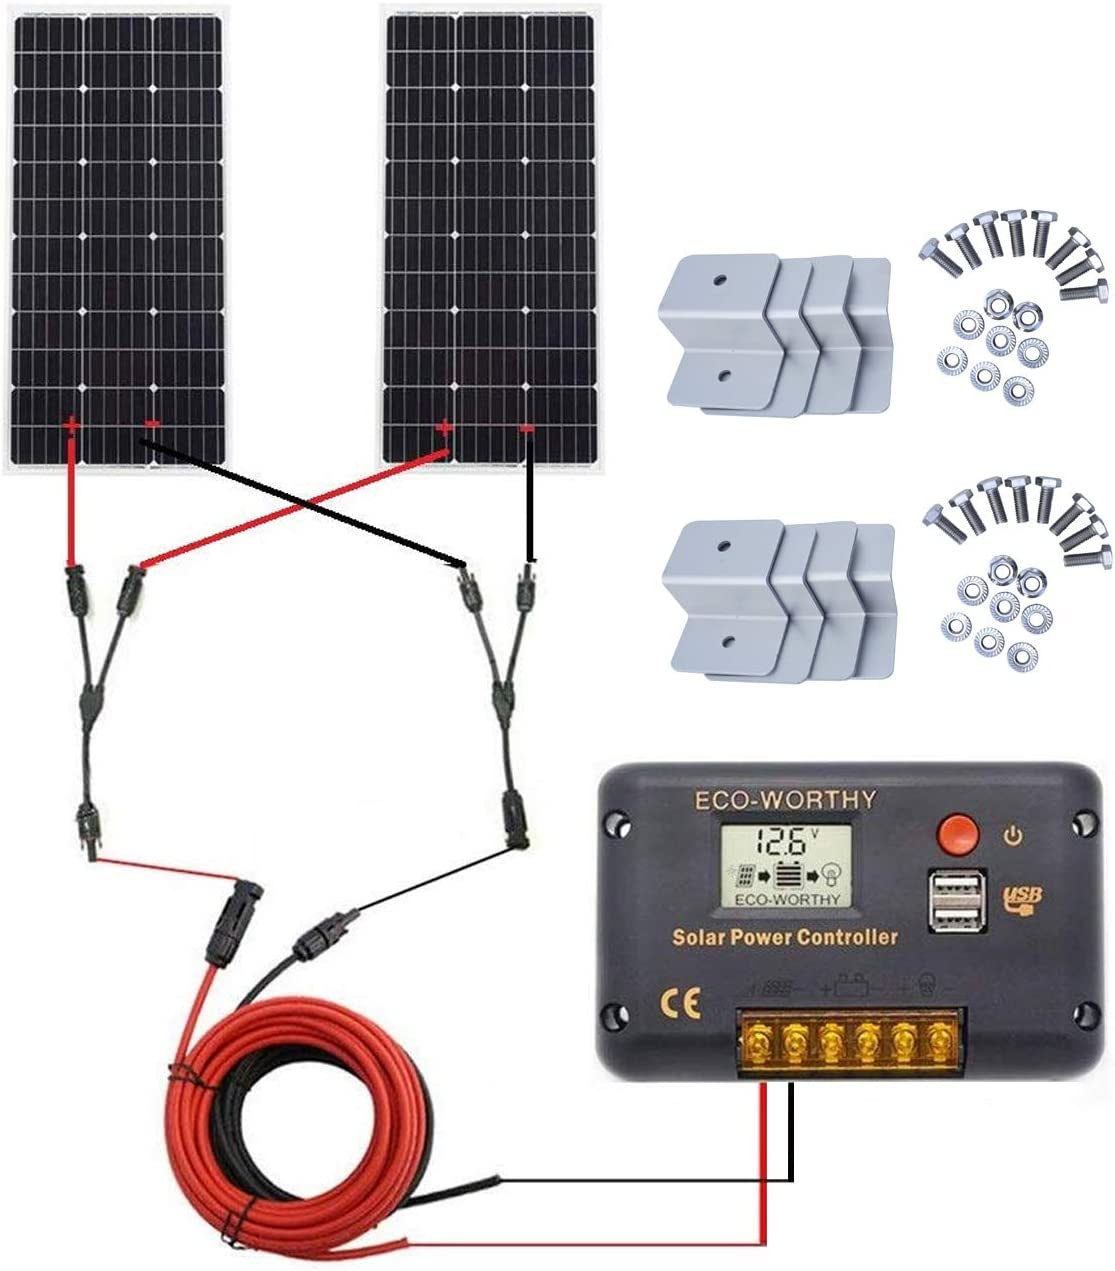 ECO-WORTHY 200 Watt 2pcs 100W Monocrystalline Solar Panel Complete Off-Grid RV Boat Kit with LCD Charge Controller Solar Cable Mounting Brackets for Homes RVs Car Battery Charging